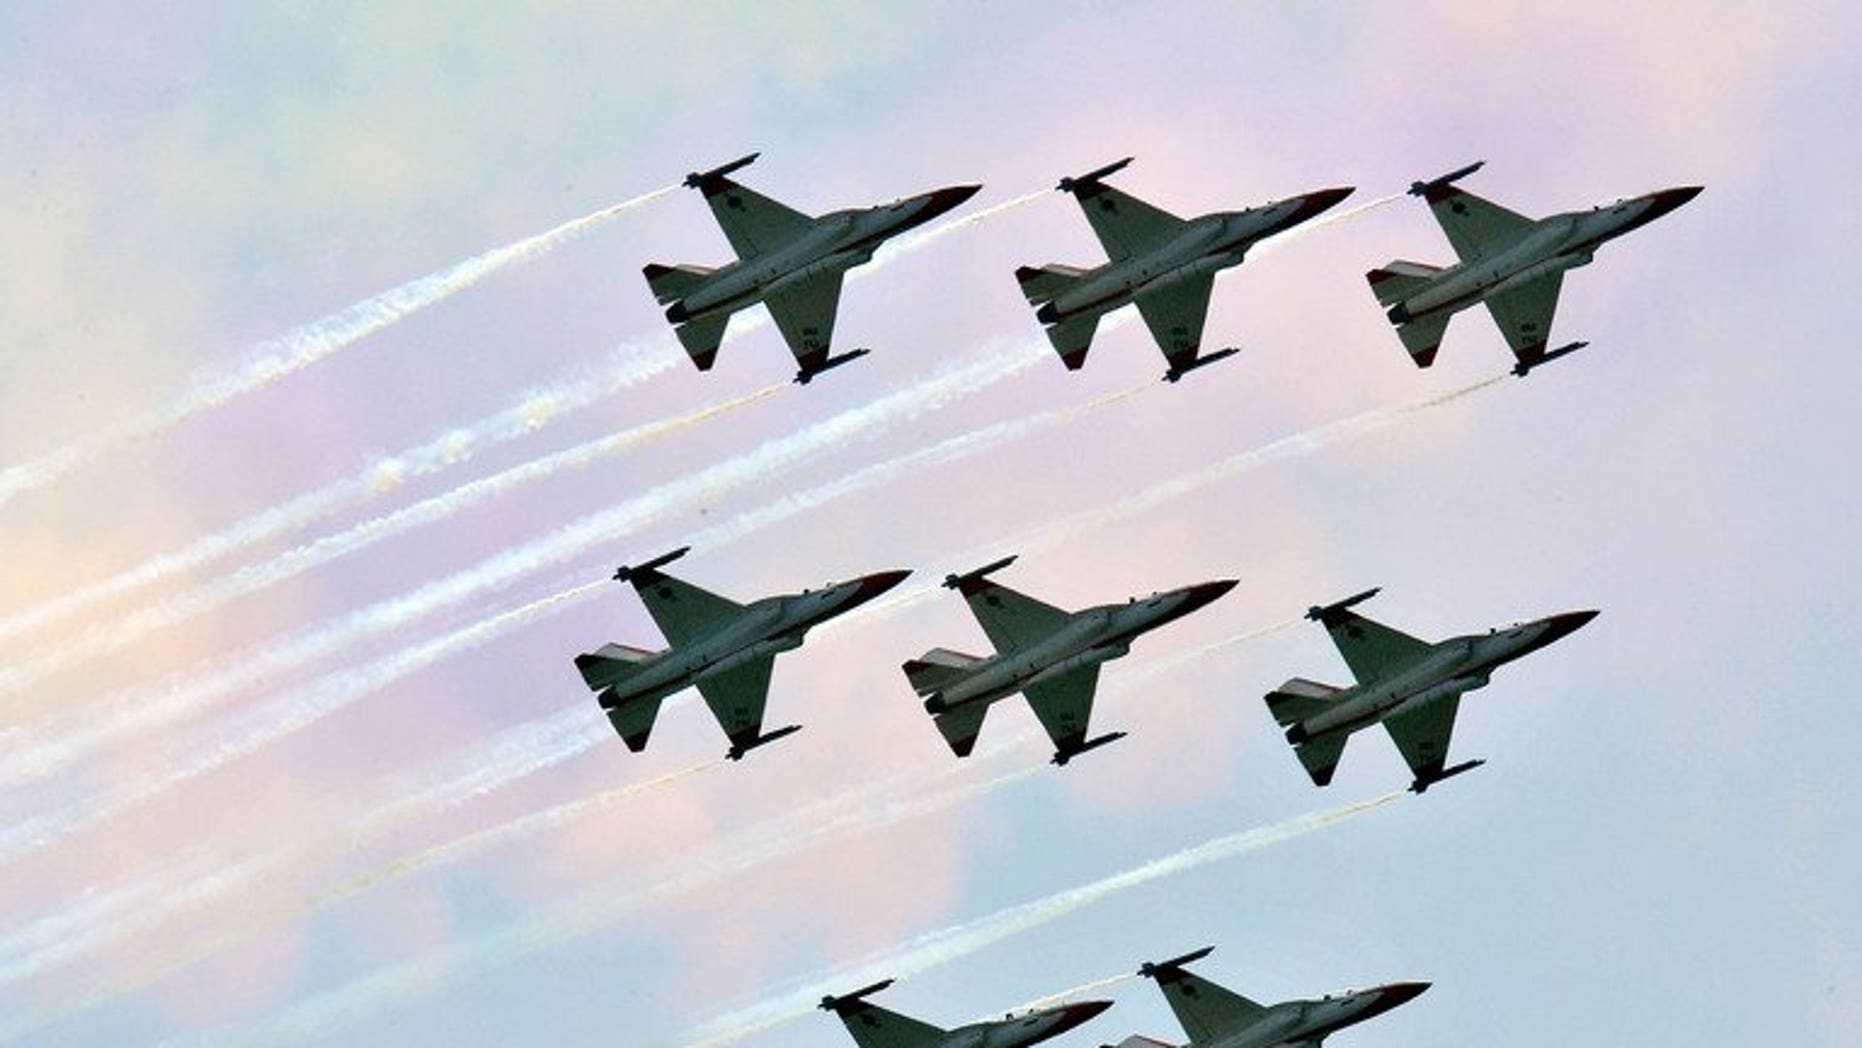 This file photo shows South Korea's T-50 supersonic jets, pictured in Gyeryong, south of Seoul, on October 1, 2009. S.Korea will buy European bunker-busting missiles as the United States refused to sell the same kind of weapons to the country, the state procurement agency said on Wednesday.